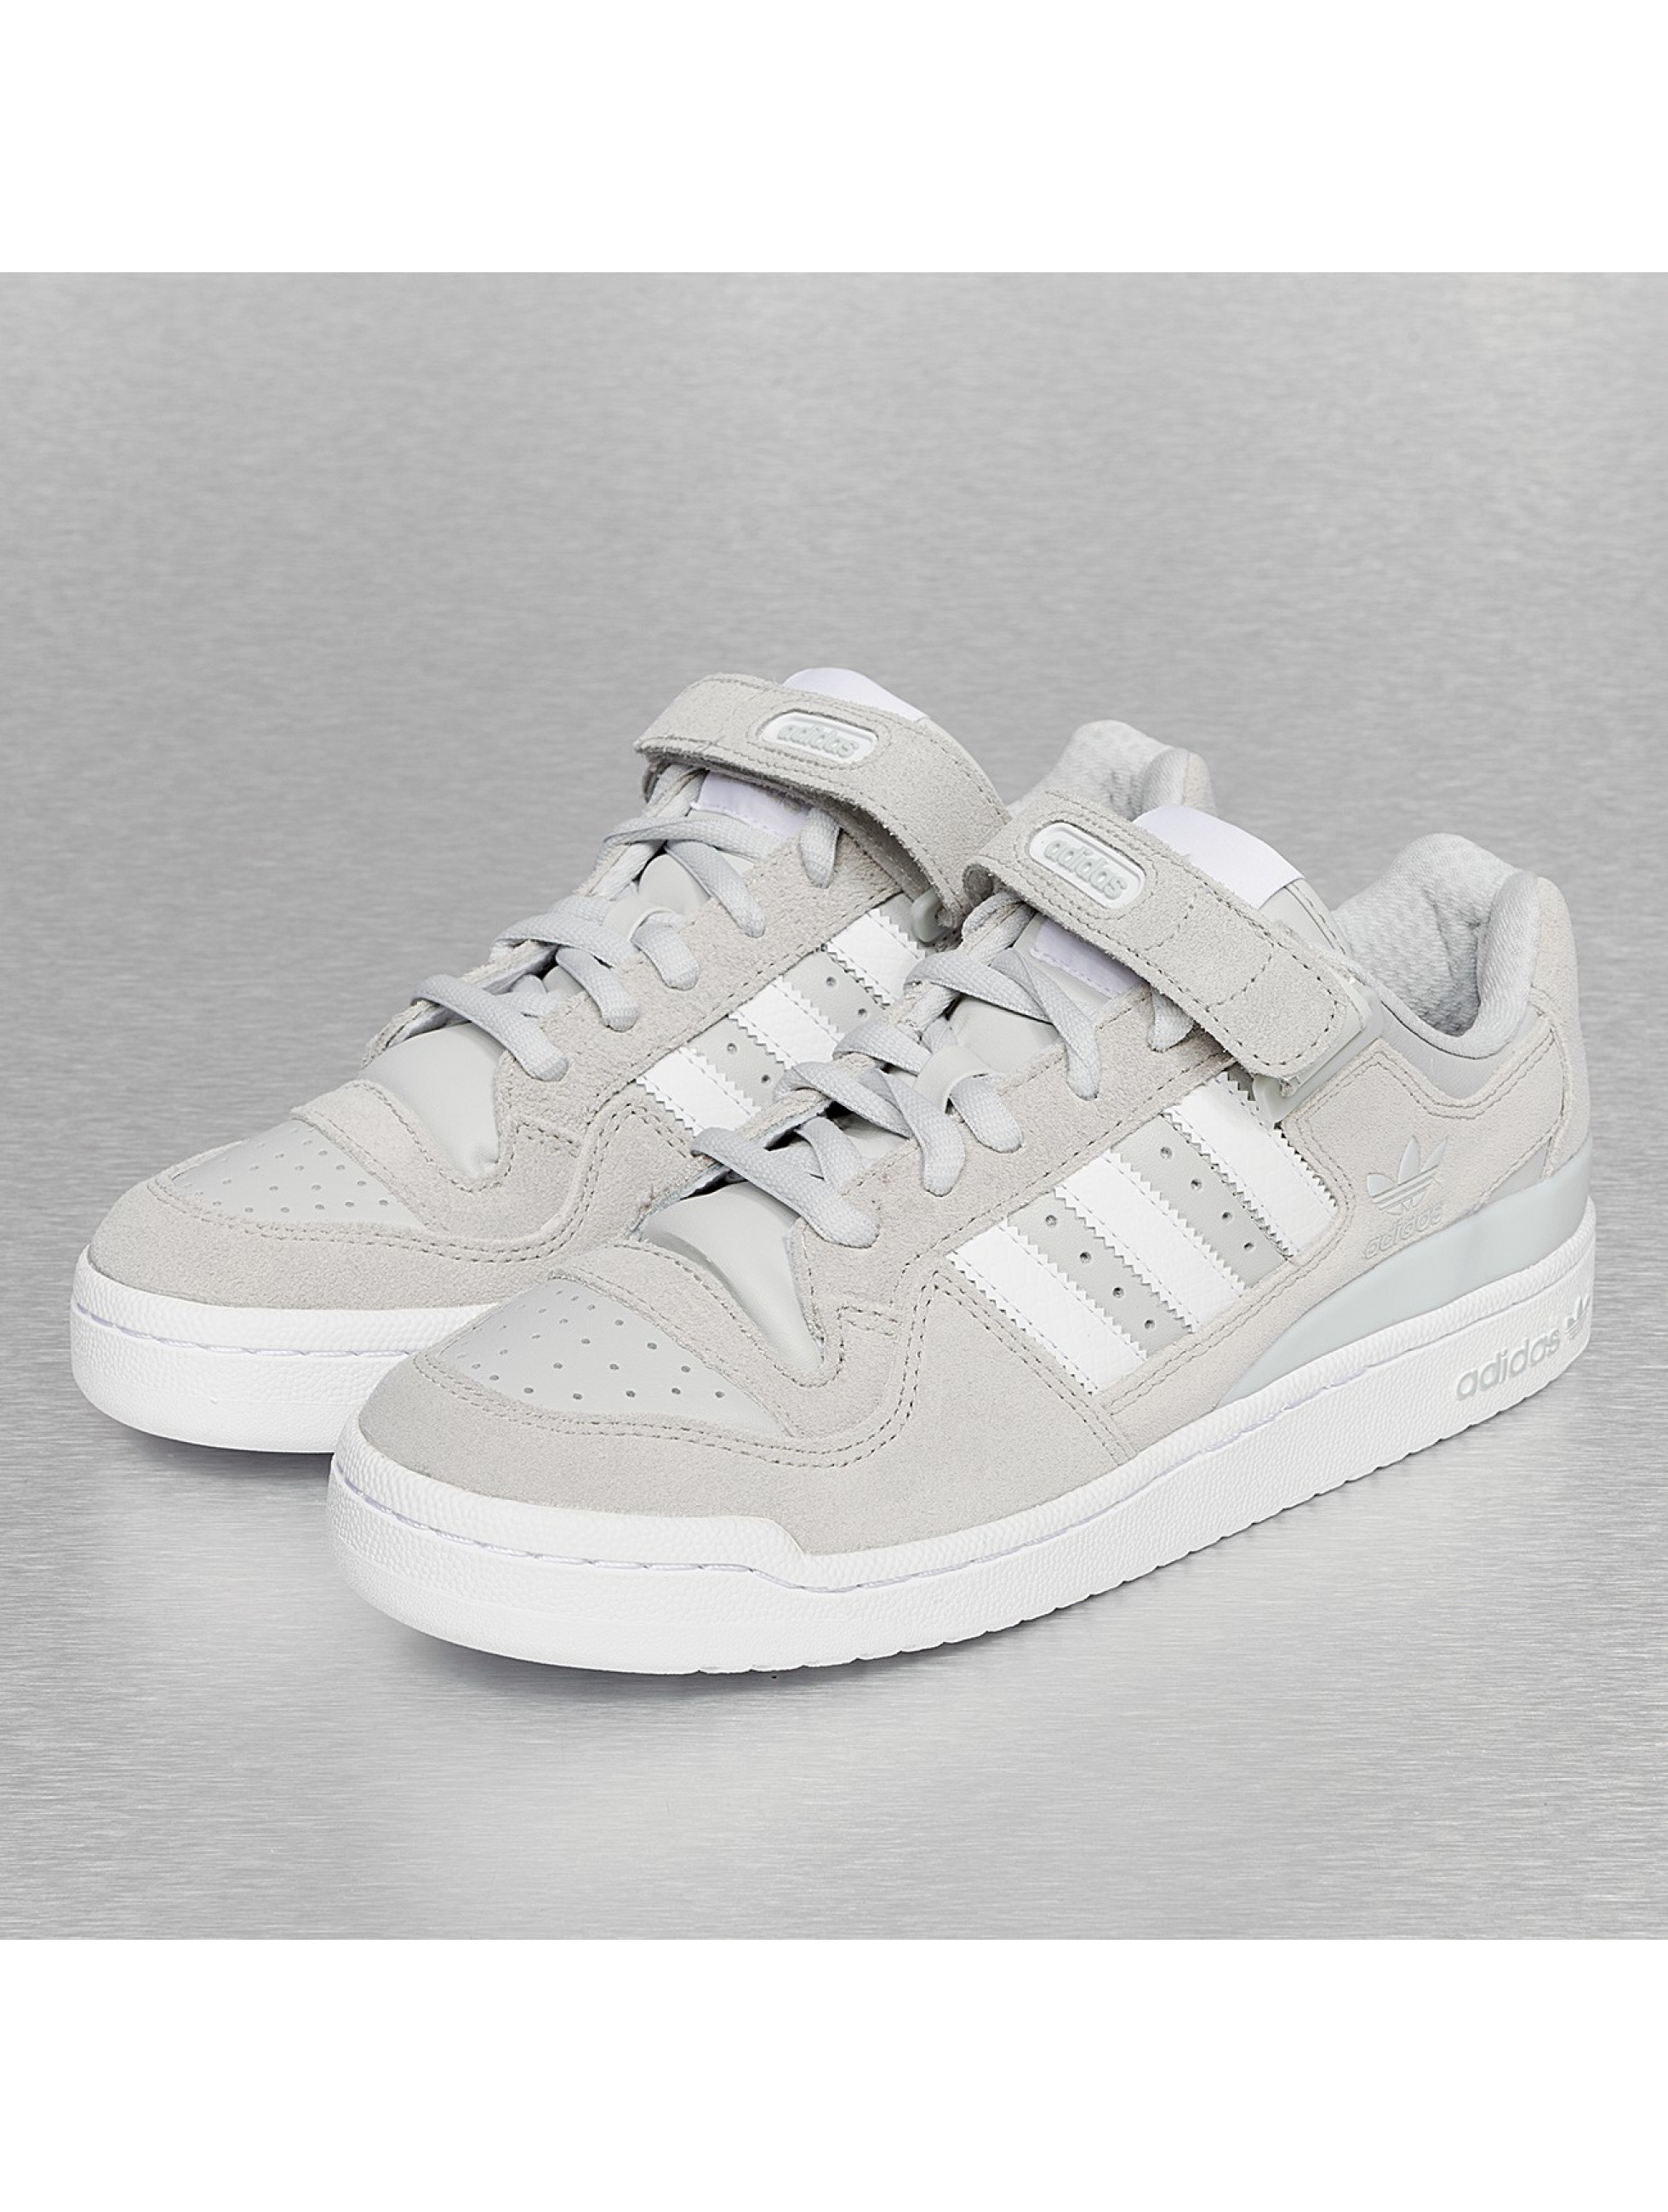 on sale c85a4 d7d84 but can t decide if i cop em grey or all white